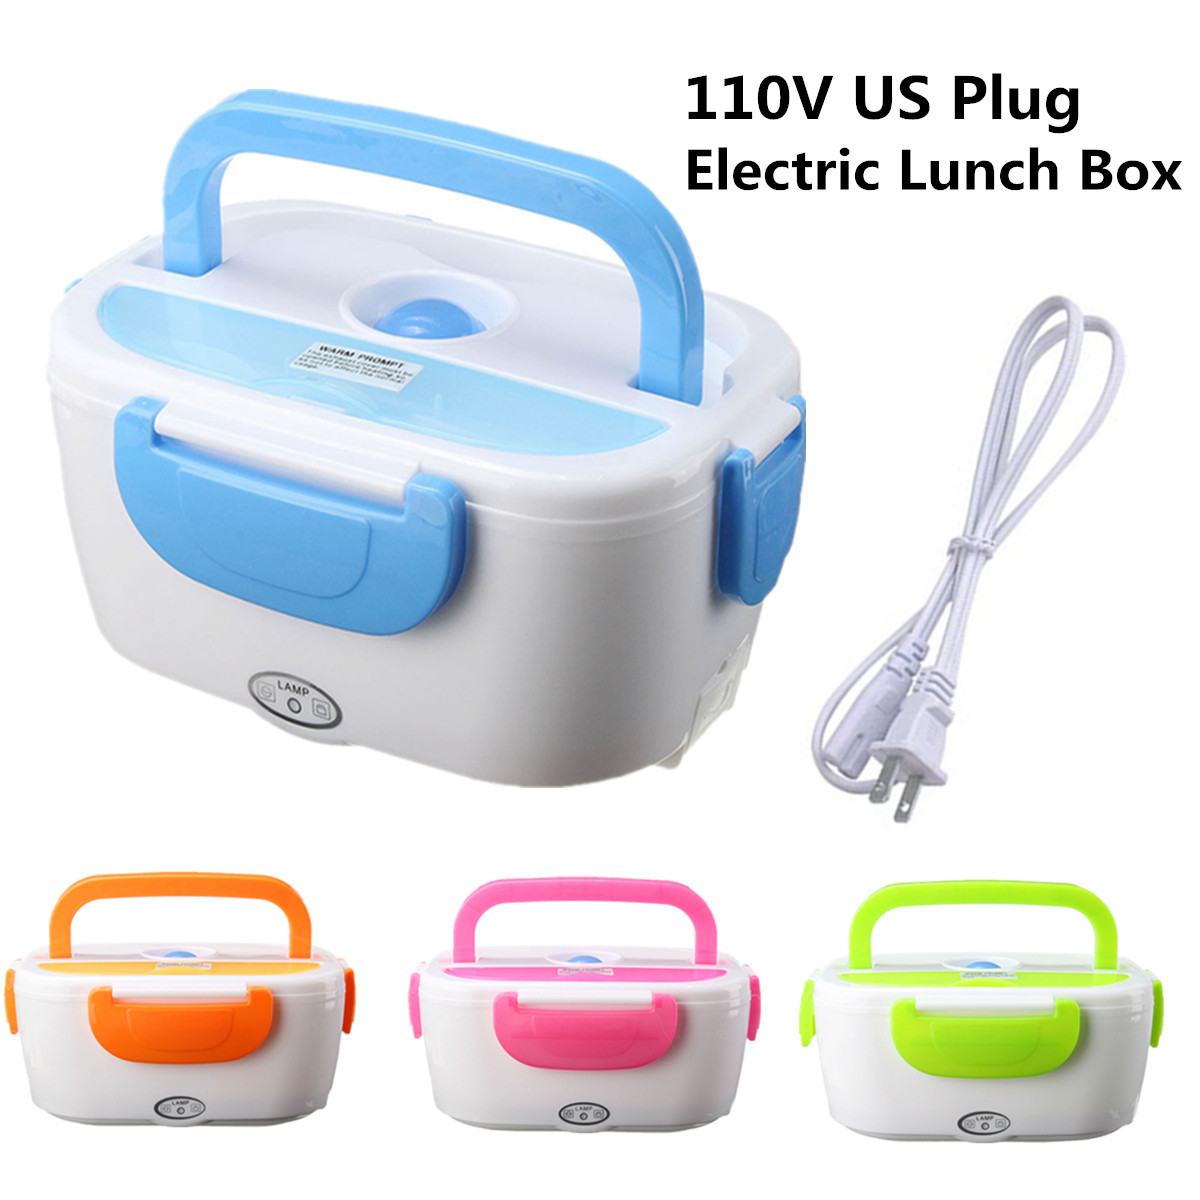 Portable Electric Heating Lunch Box Food Storage Warmer with Removable Container Green/ Blue